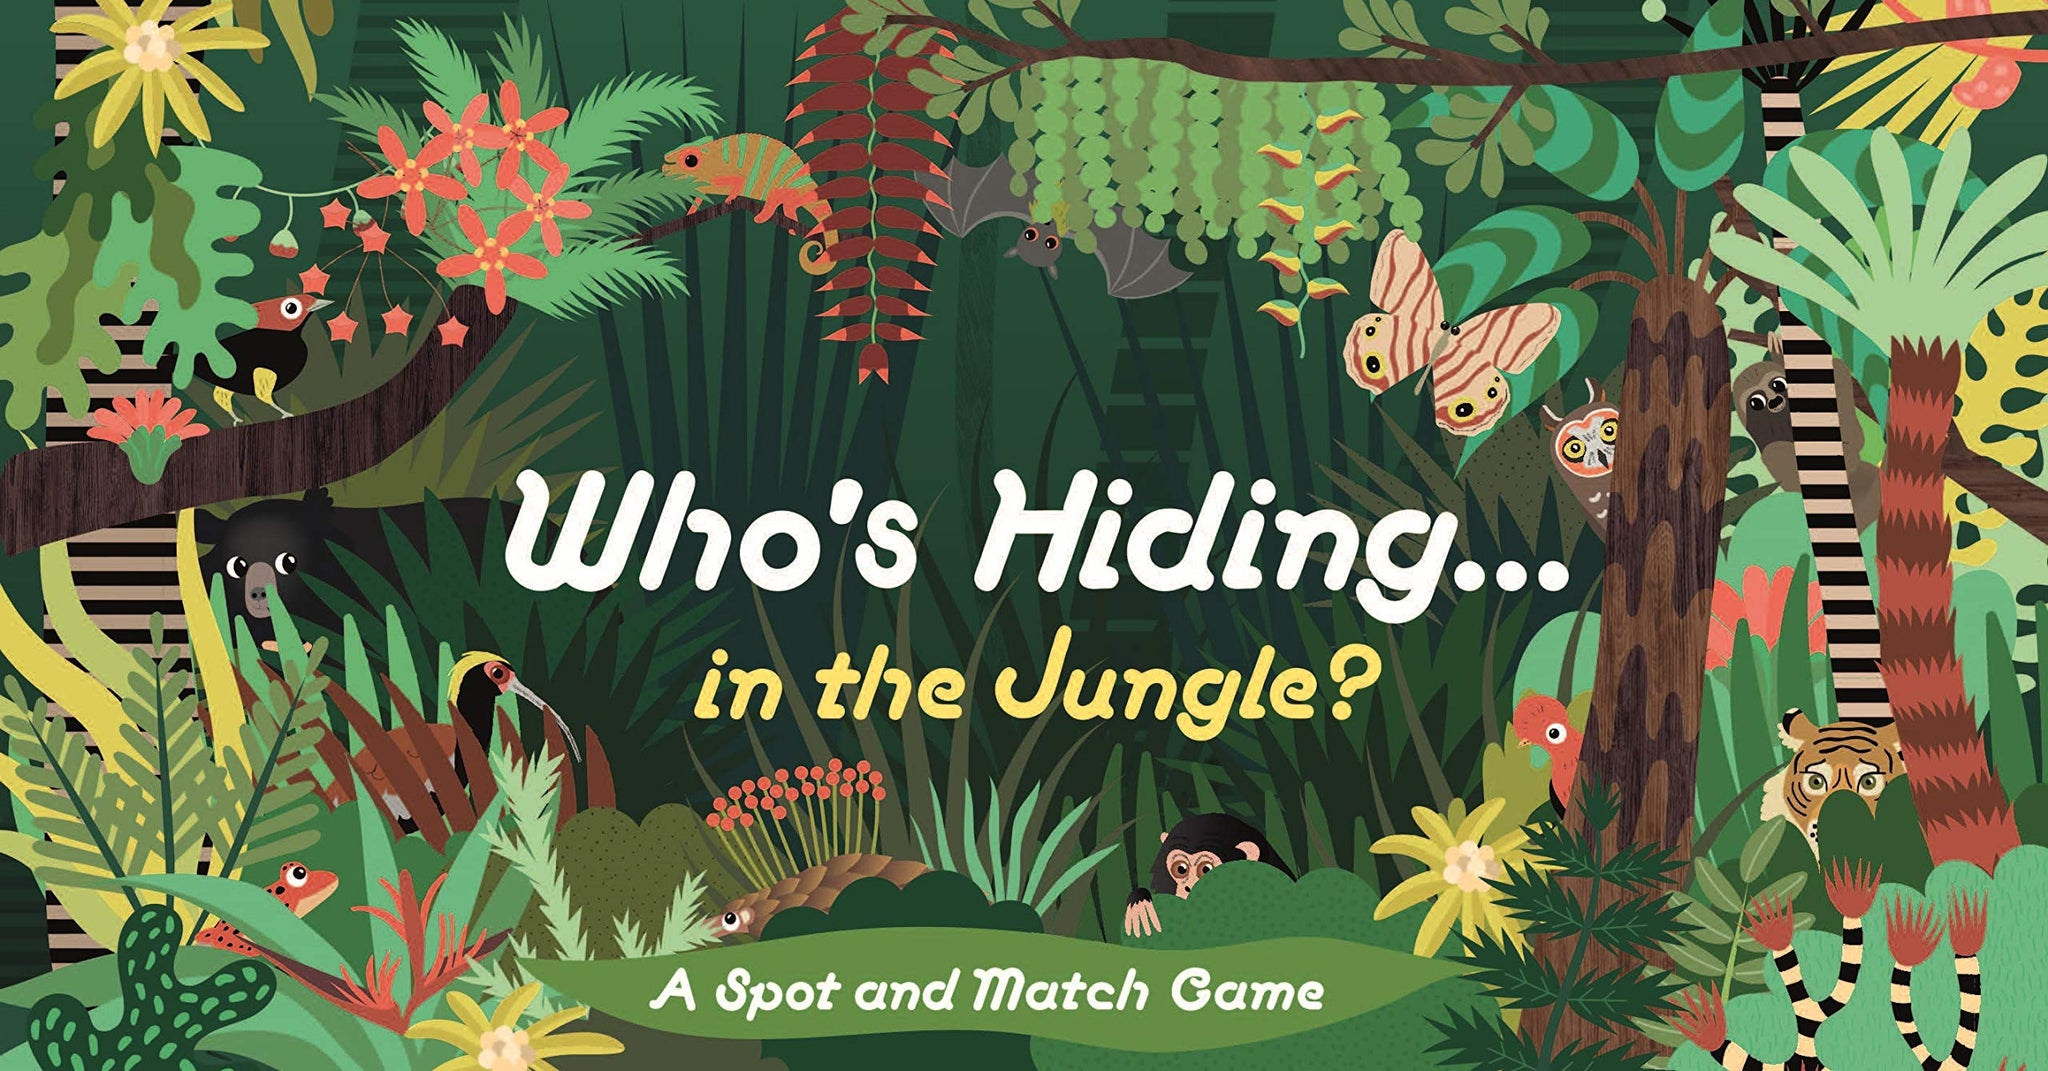 Who's Hiding in the Jungle